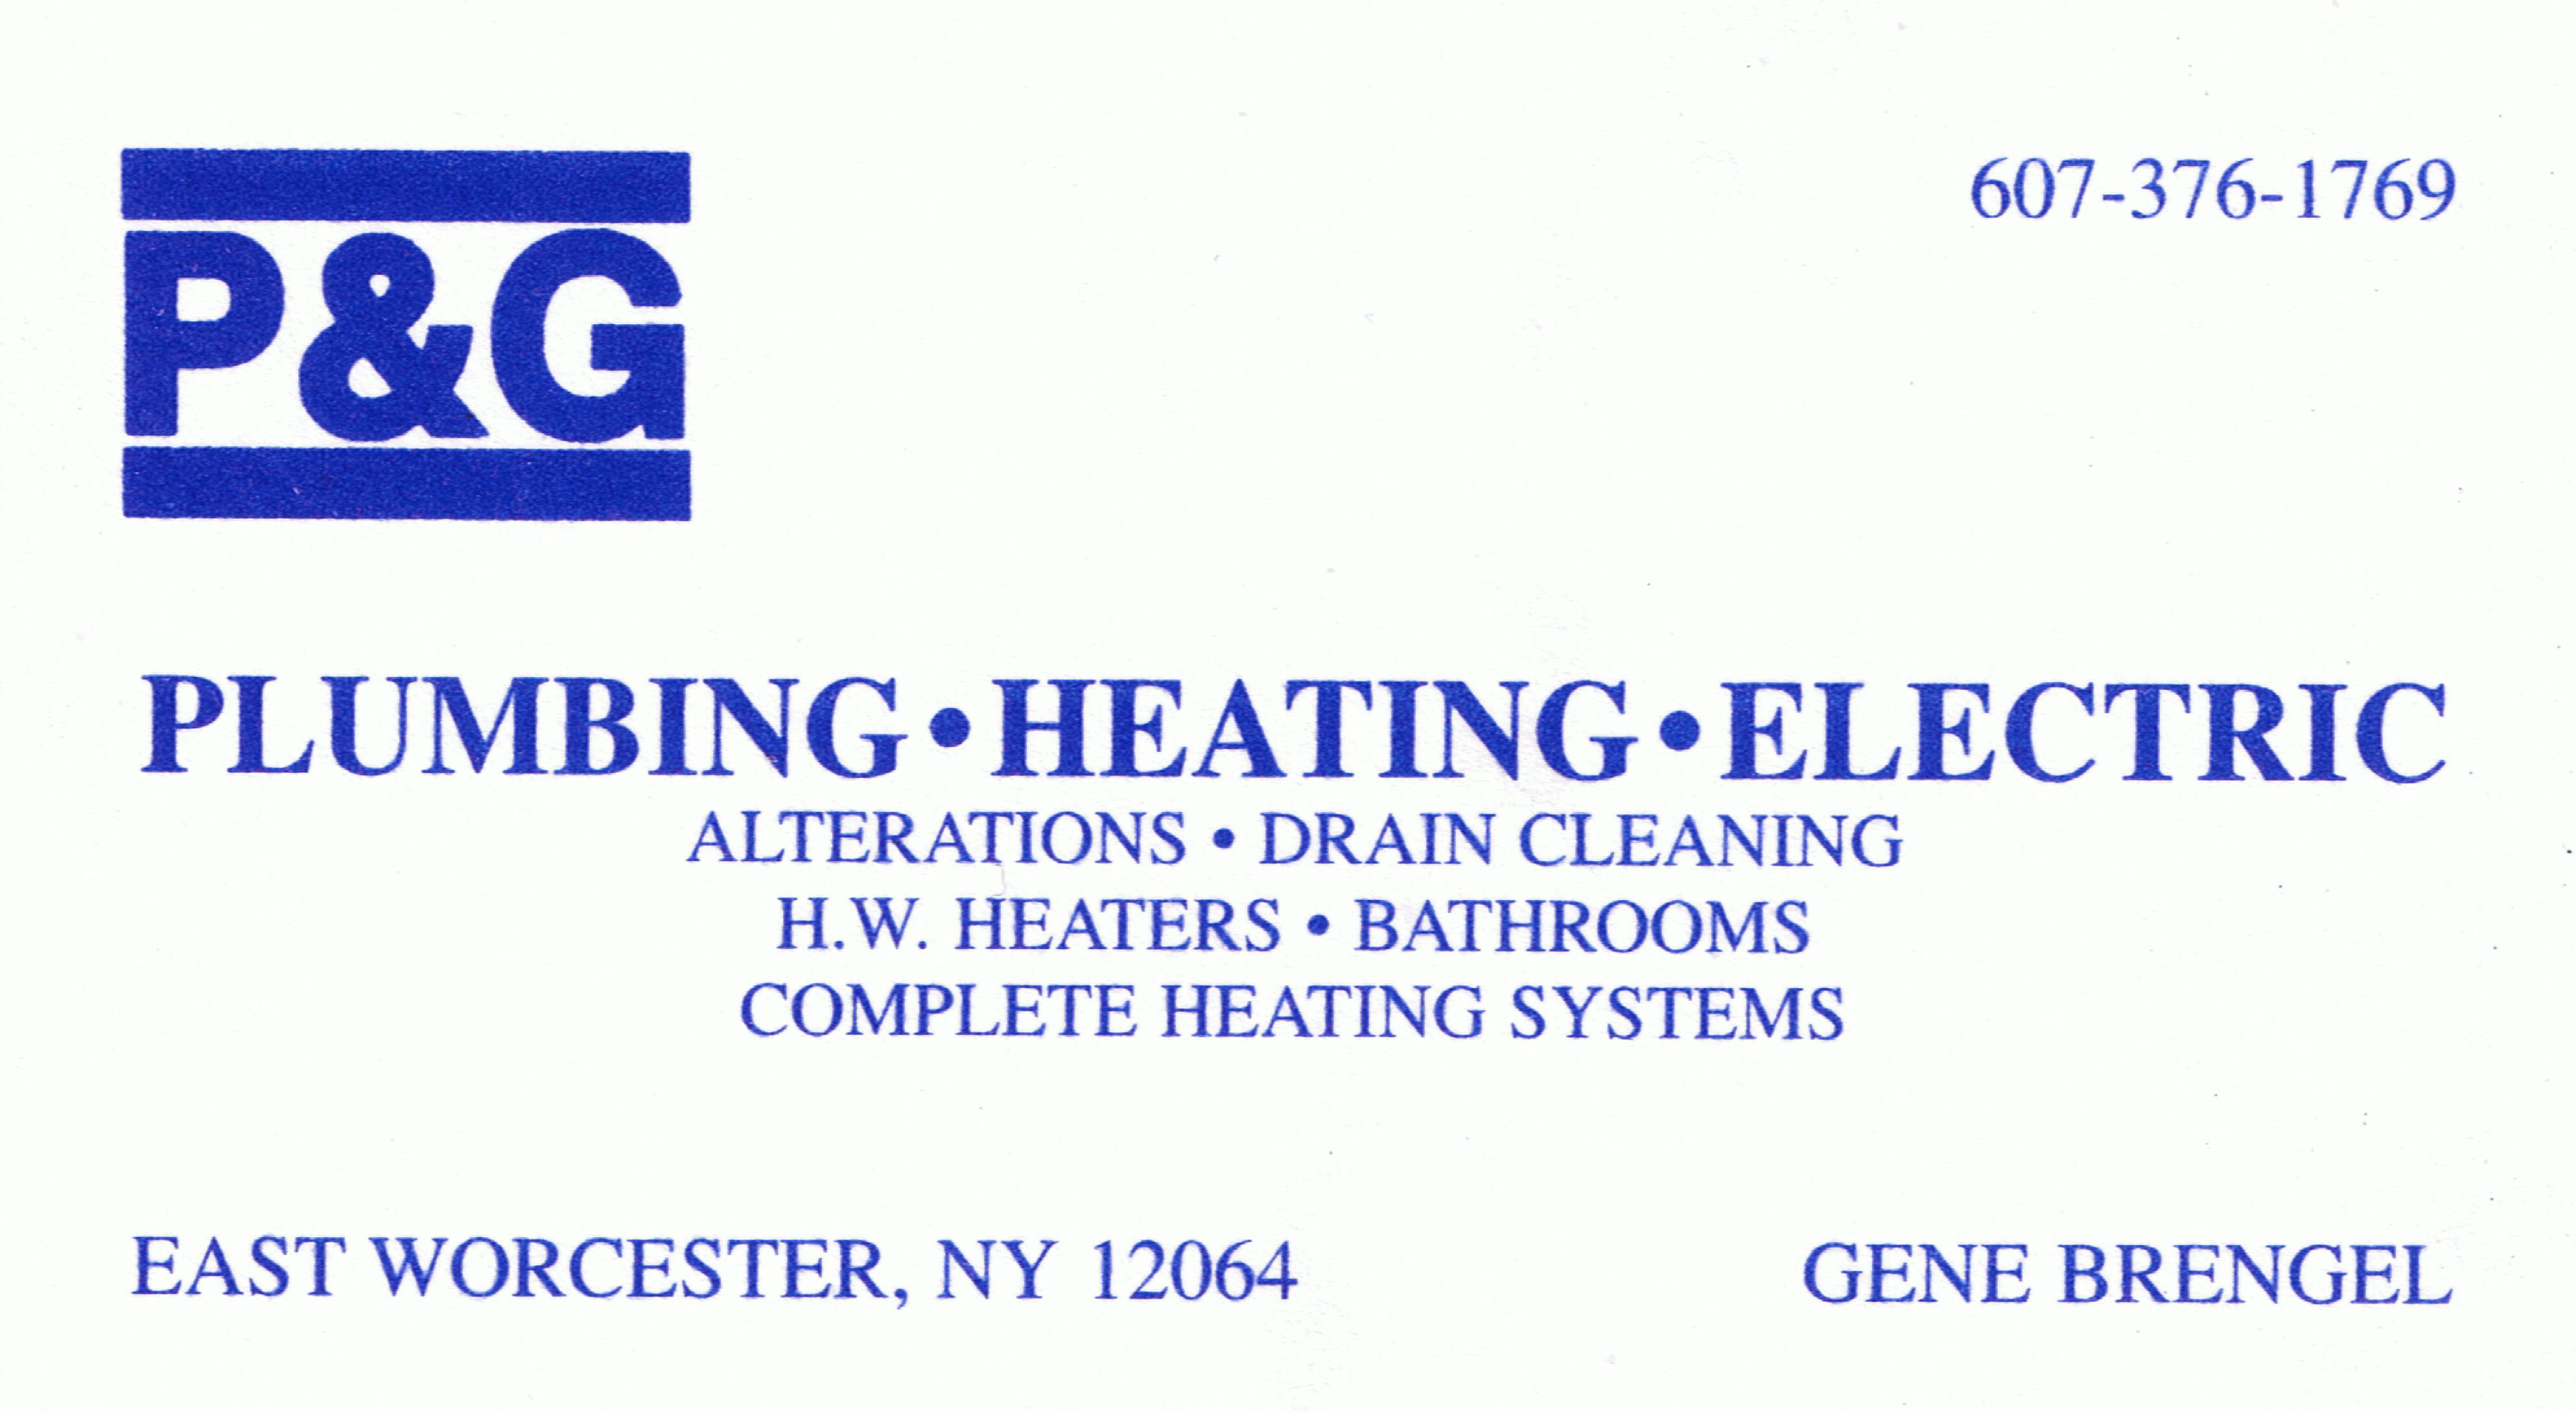 P&G Plumbing & Heating